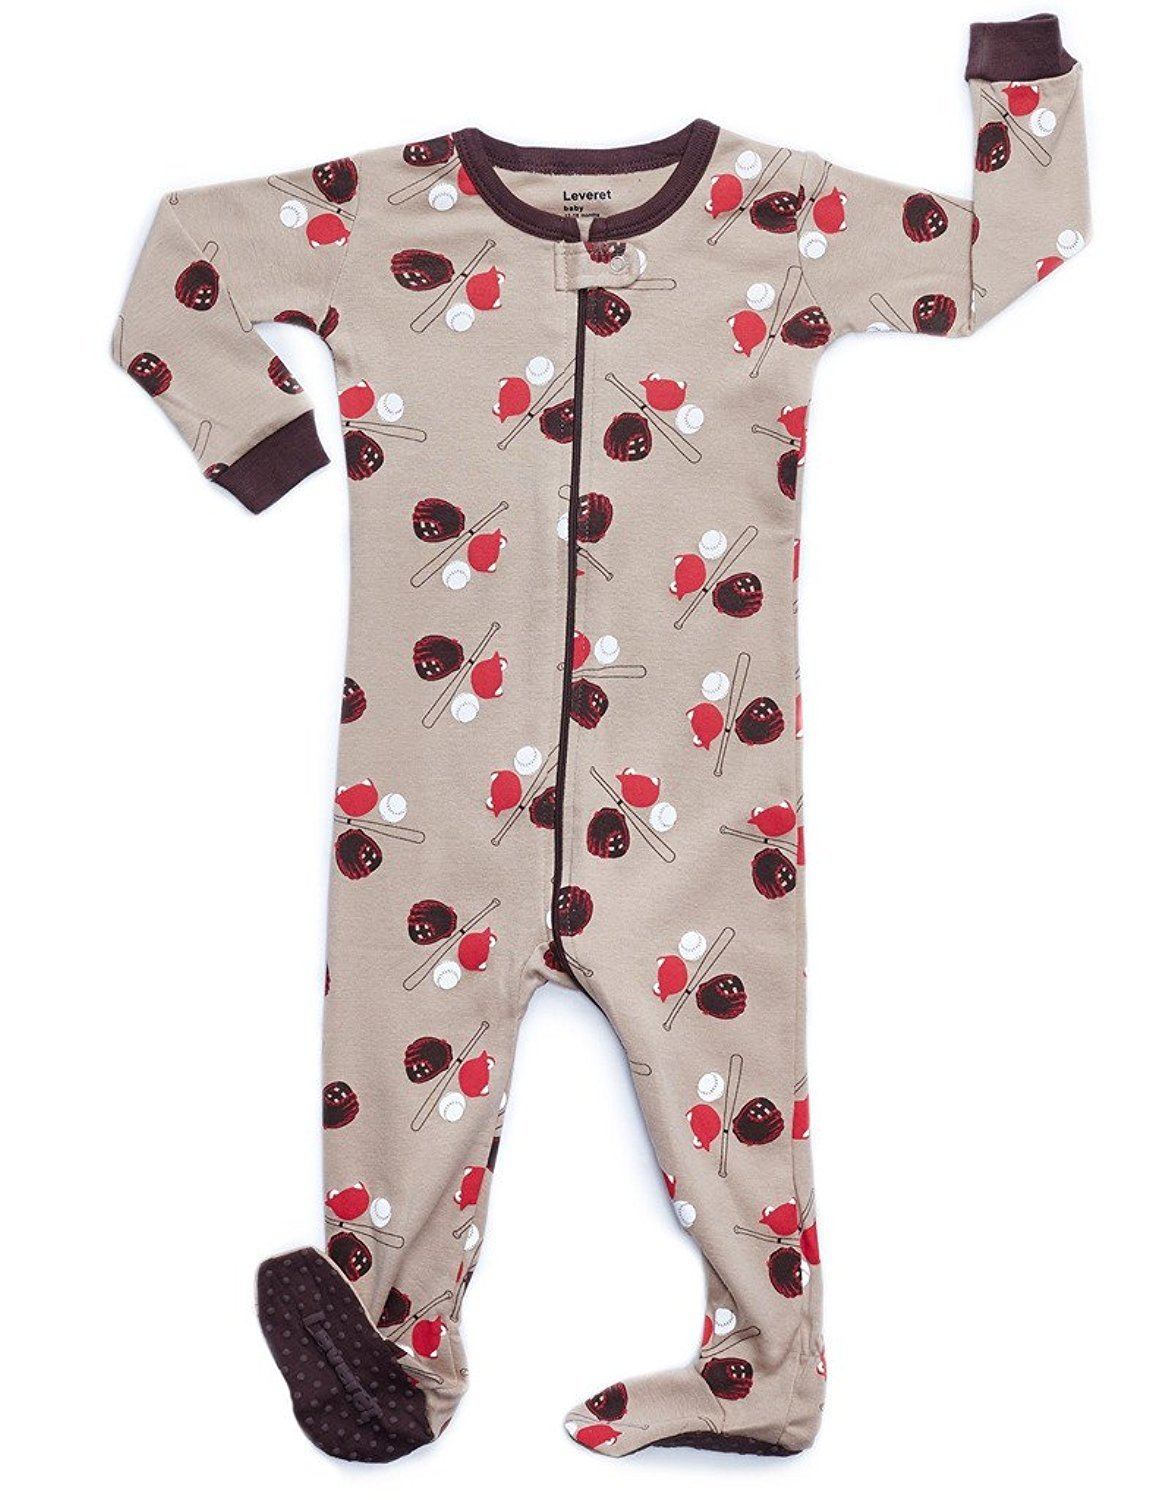 Leveret Baseball Footed Pajama Sleeper 100% Cotton 3 Years